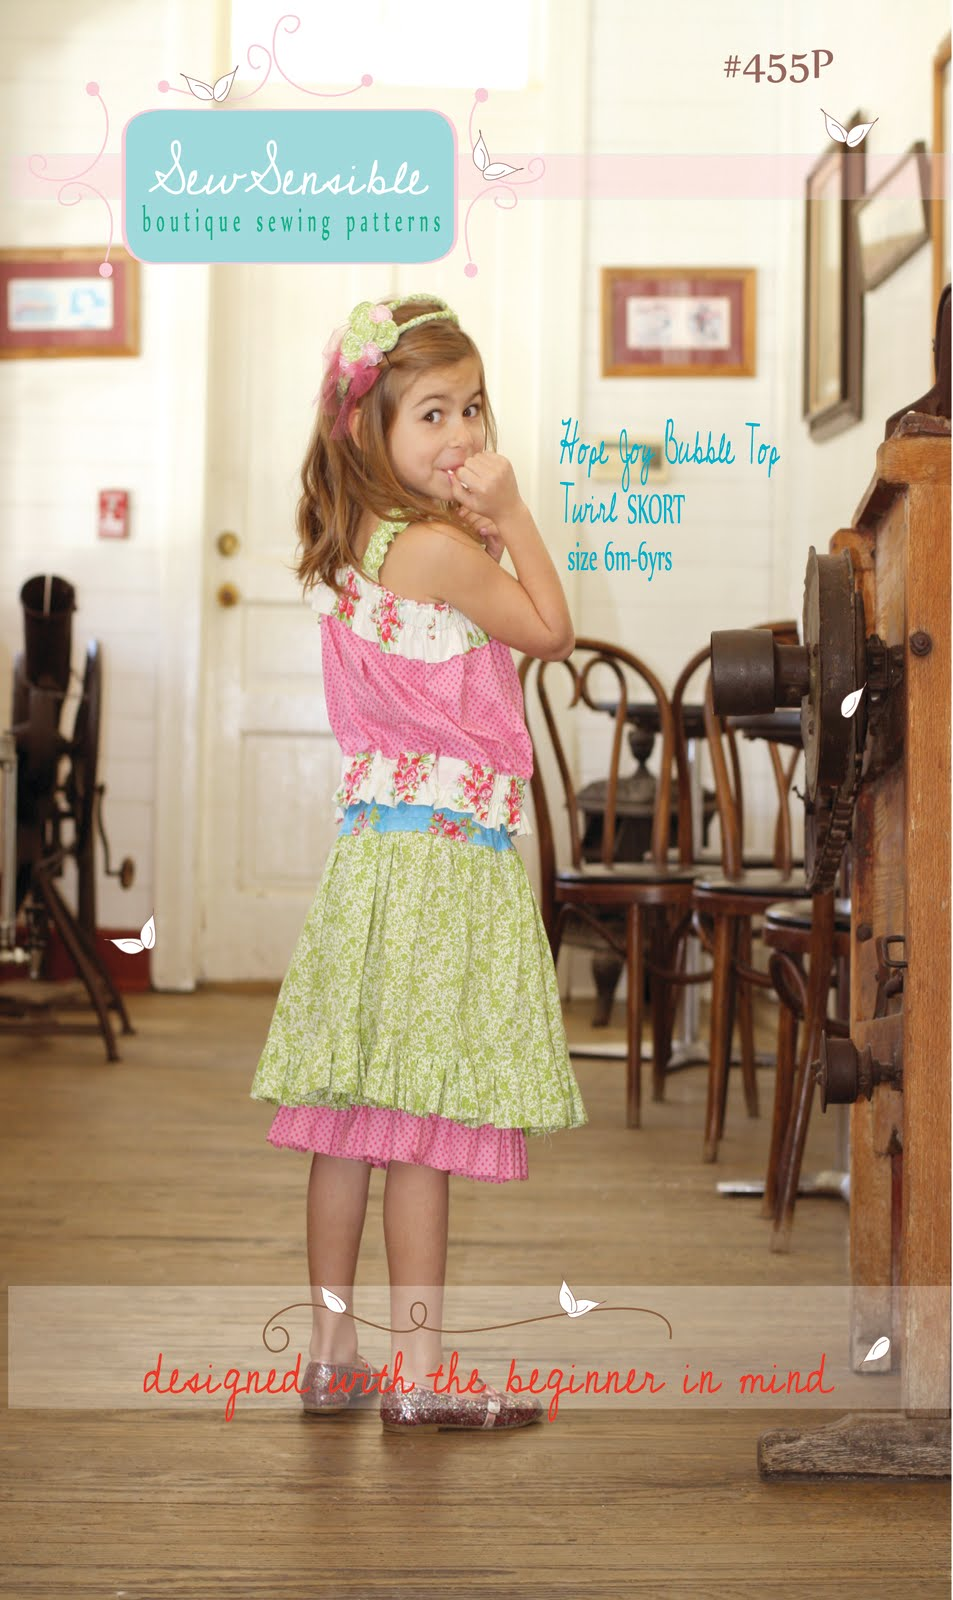 Childrens boutique sewing patterns sew patterns designed with childrens boutique sewing patterns sew patterns designed with the beginner in mind jeuxipadfo Image collections